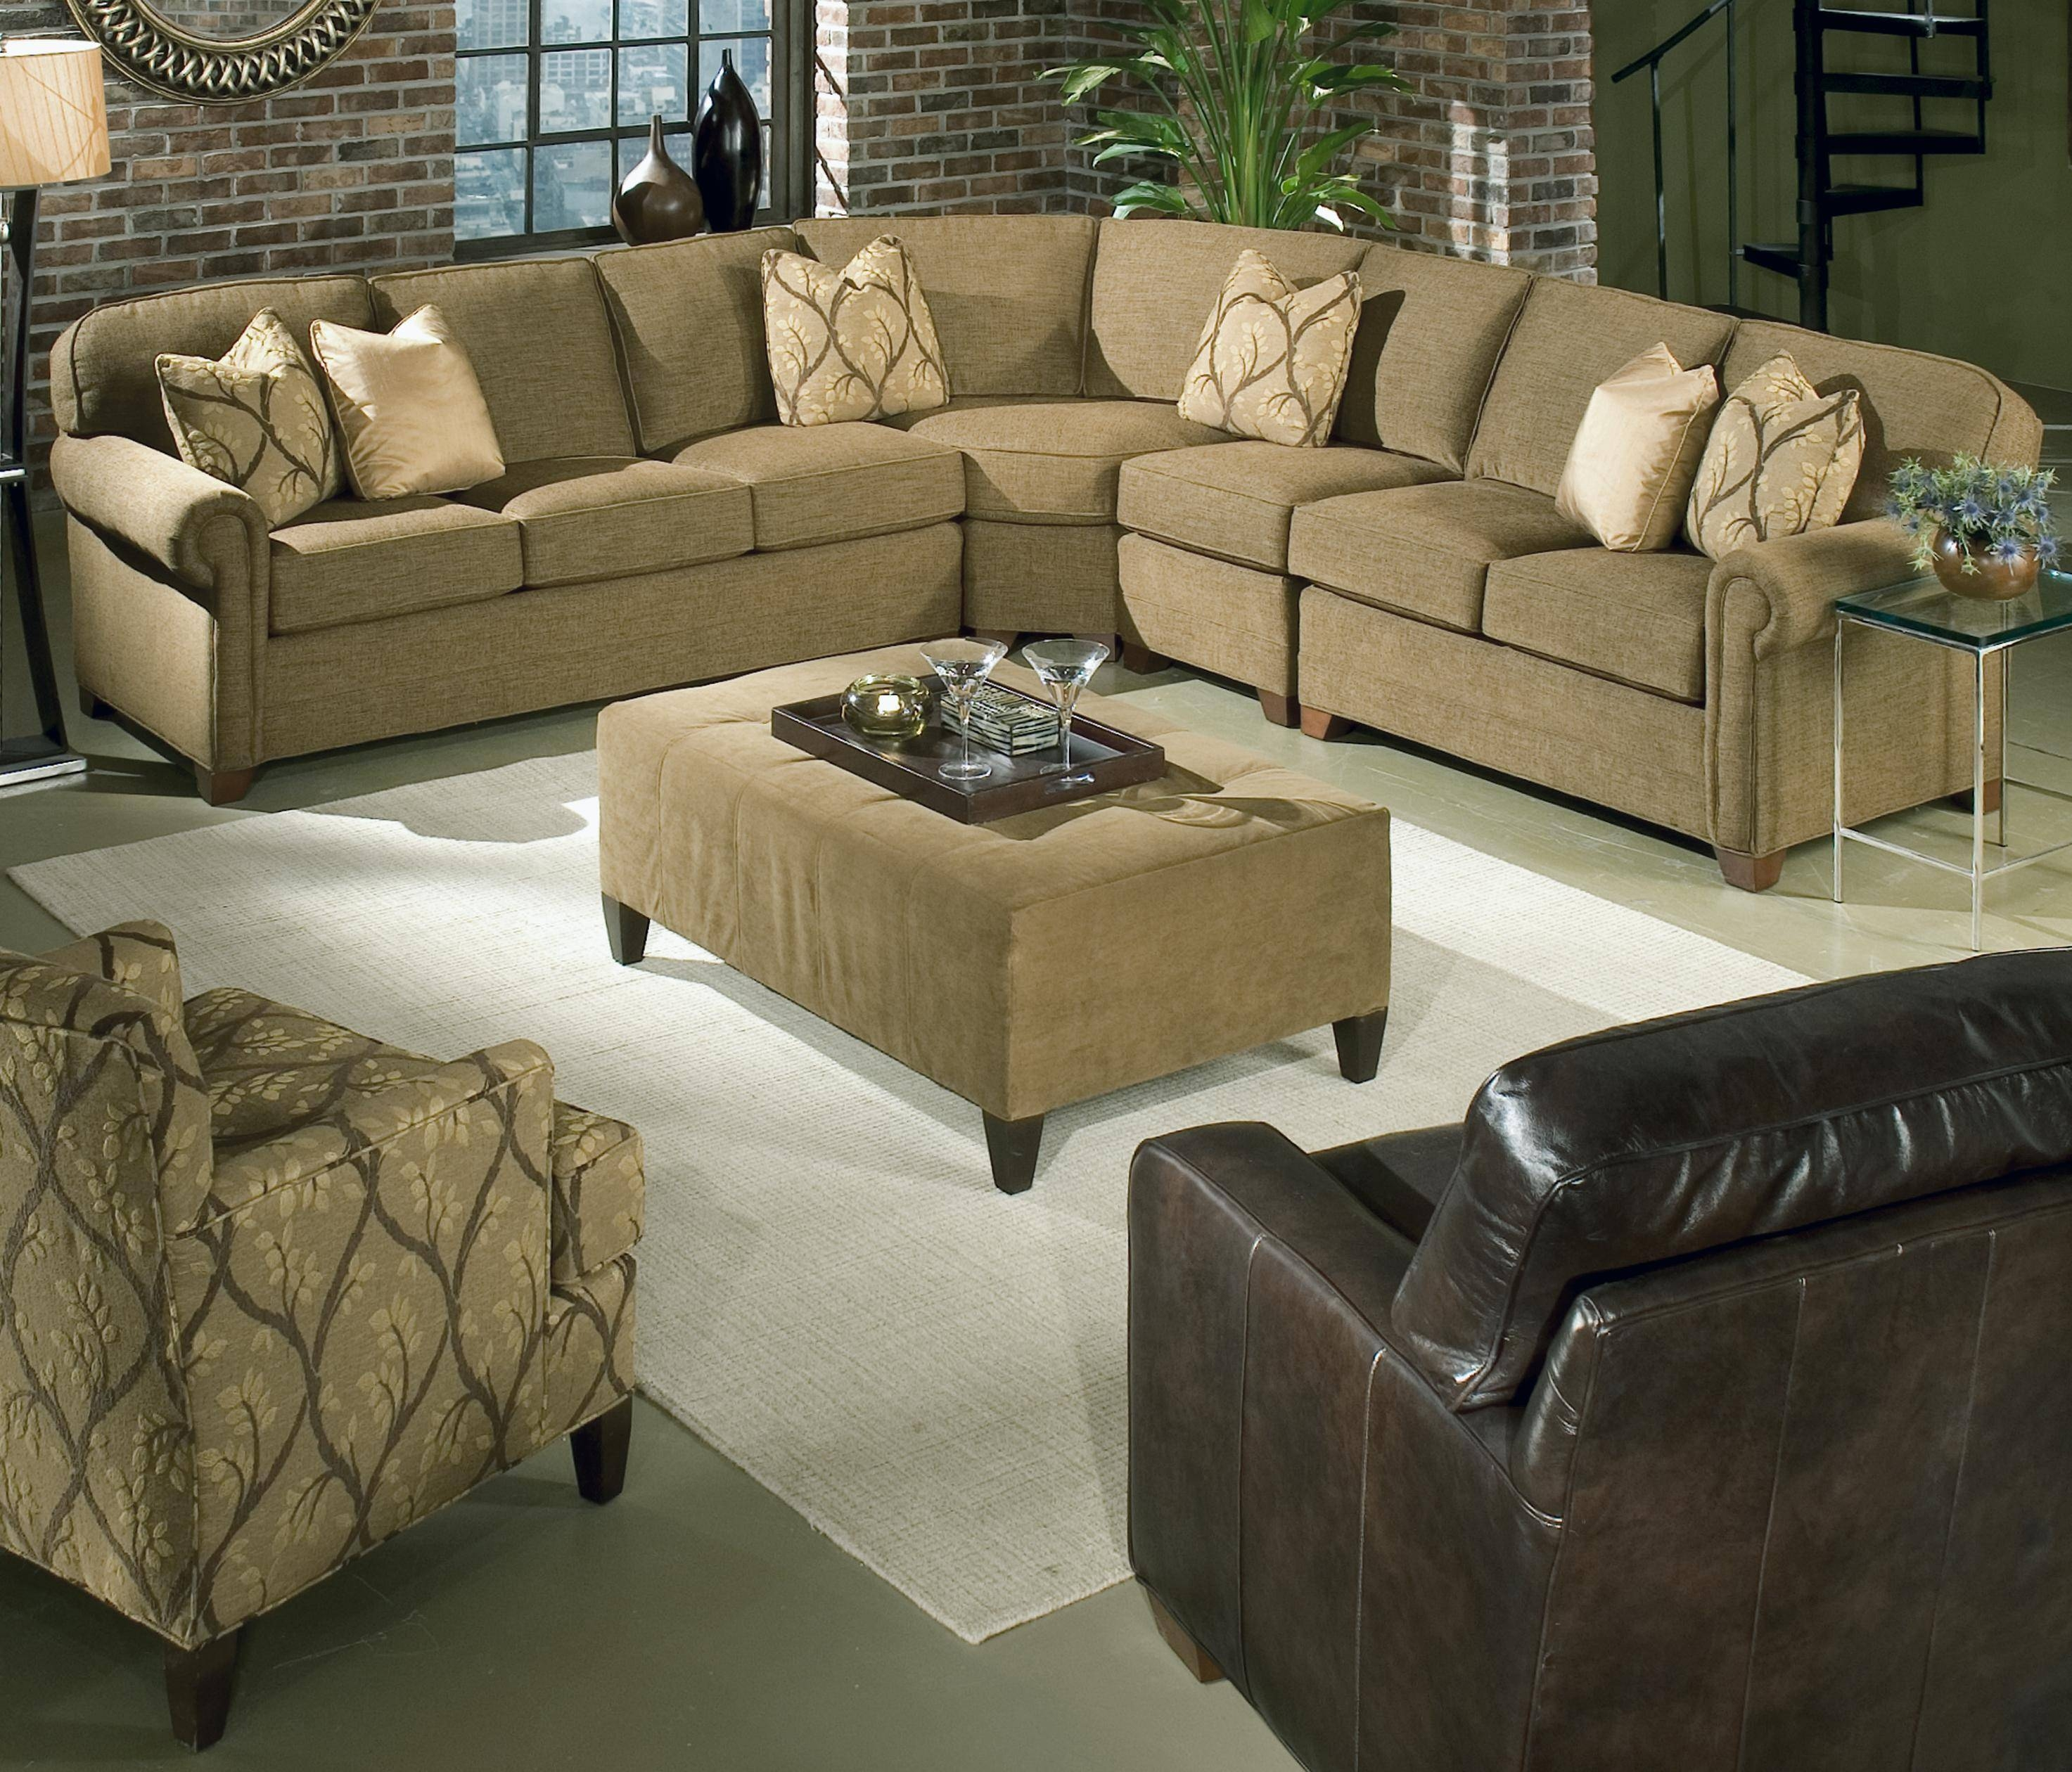 Inspirational Customizable Sectional Sofa 19 For Down Feather inside Down Feather Sectional Sofa (Image 18 of 30)